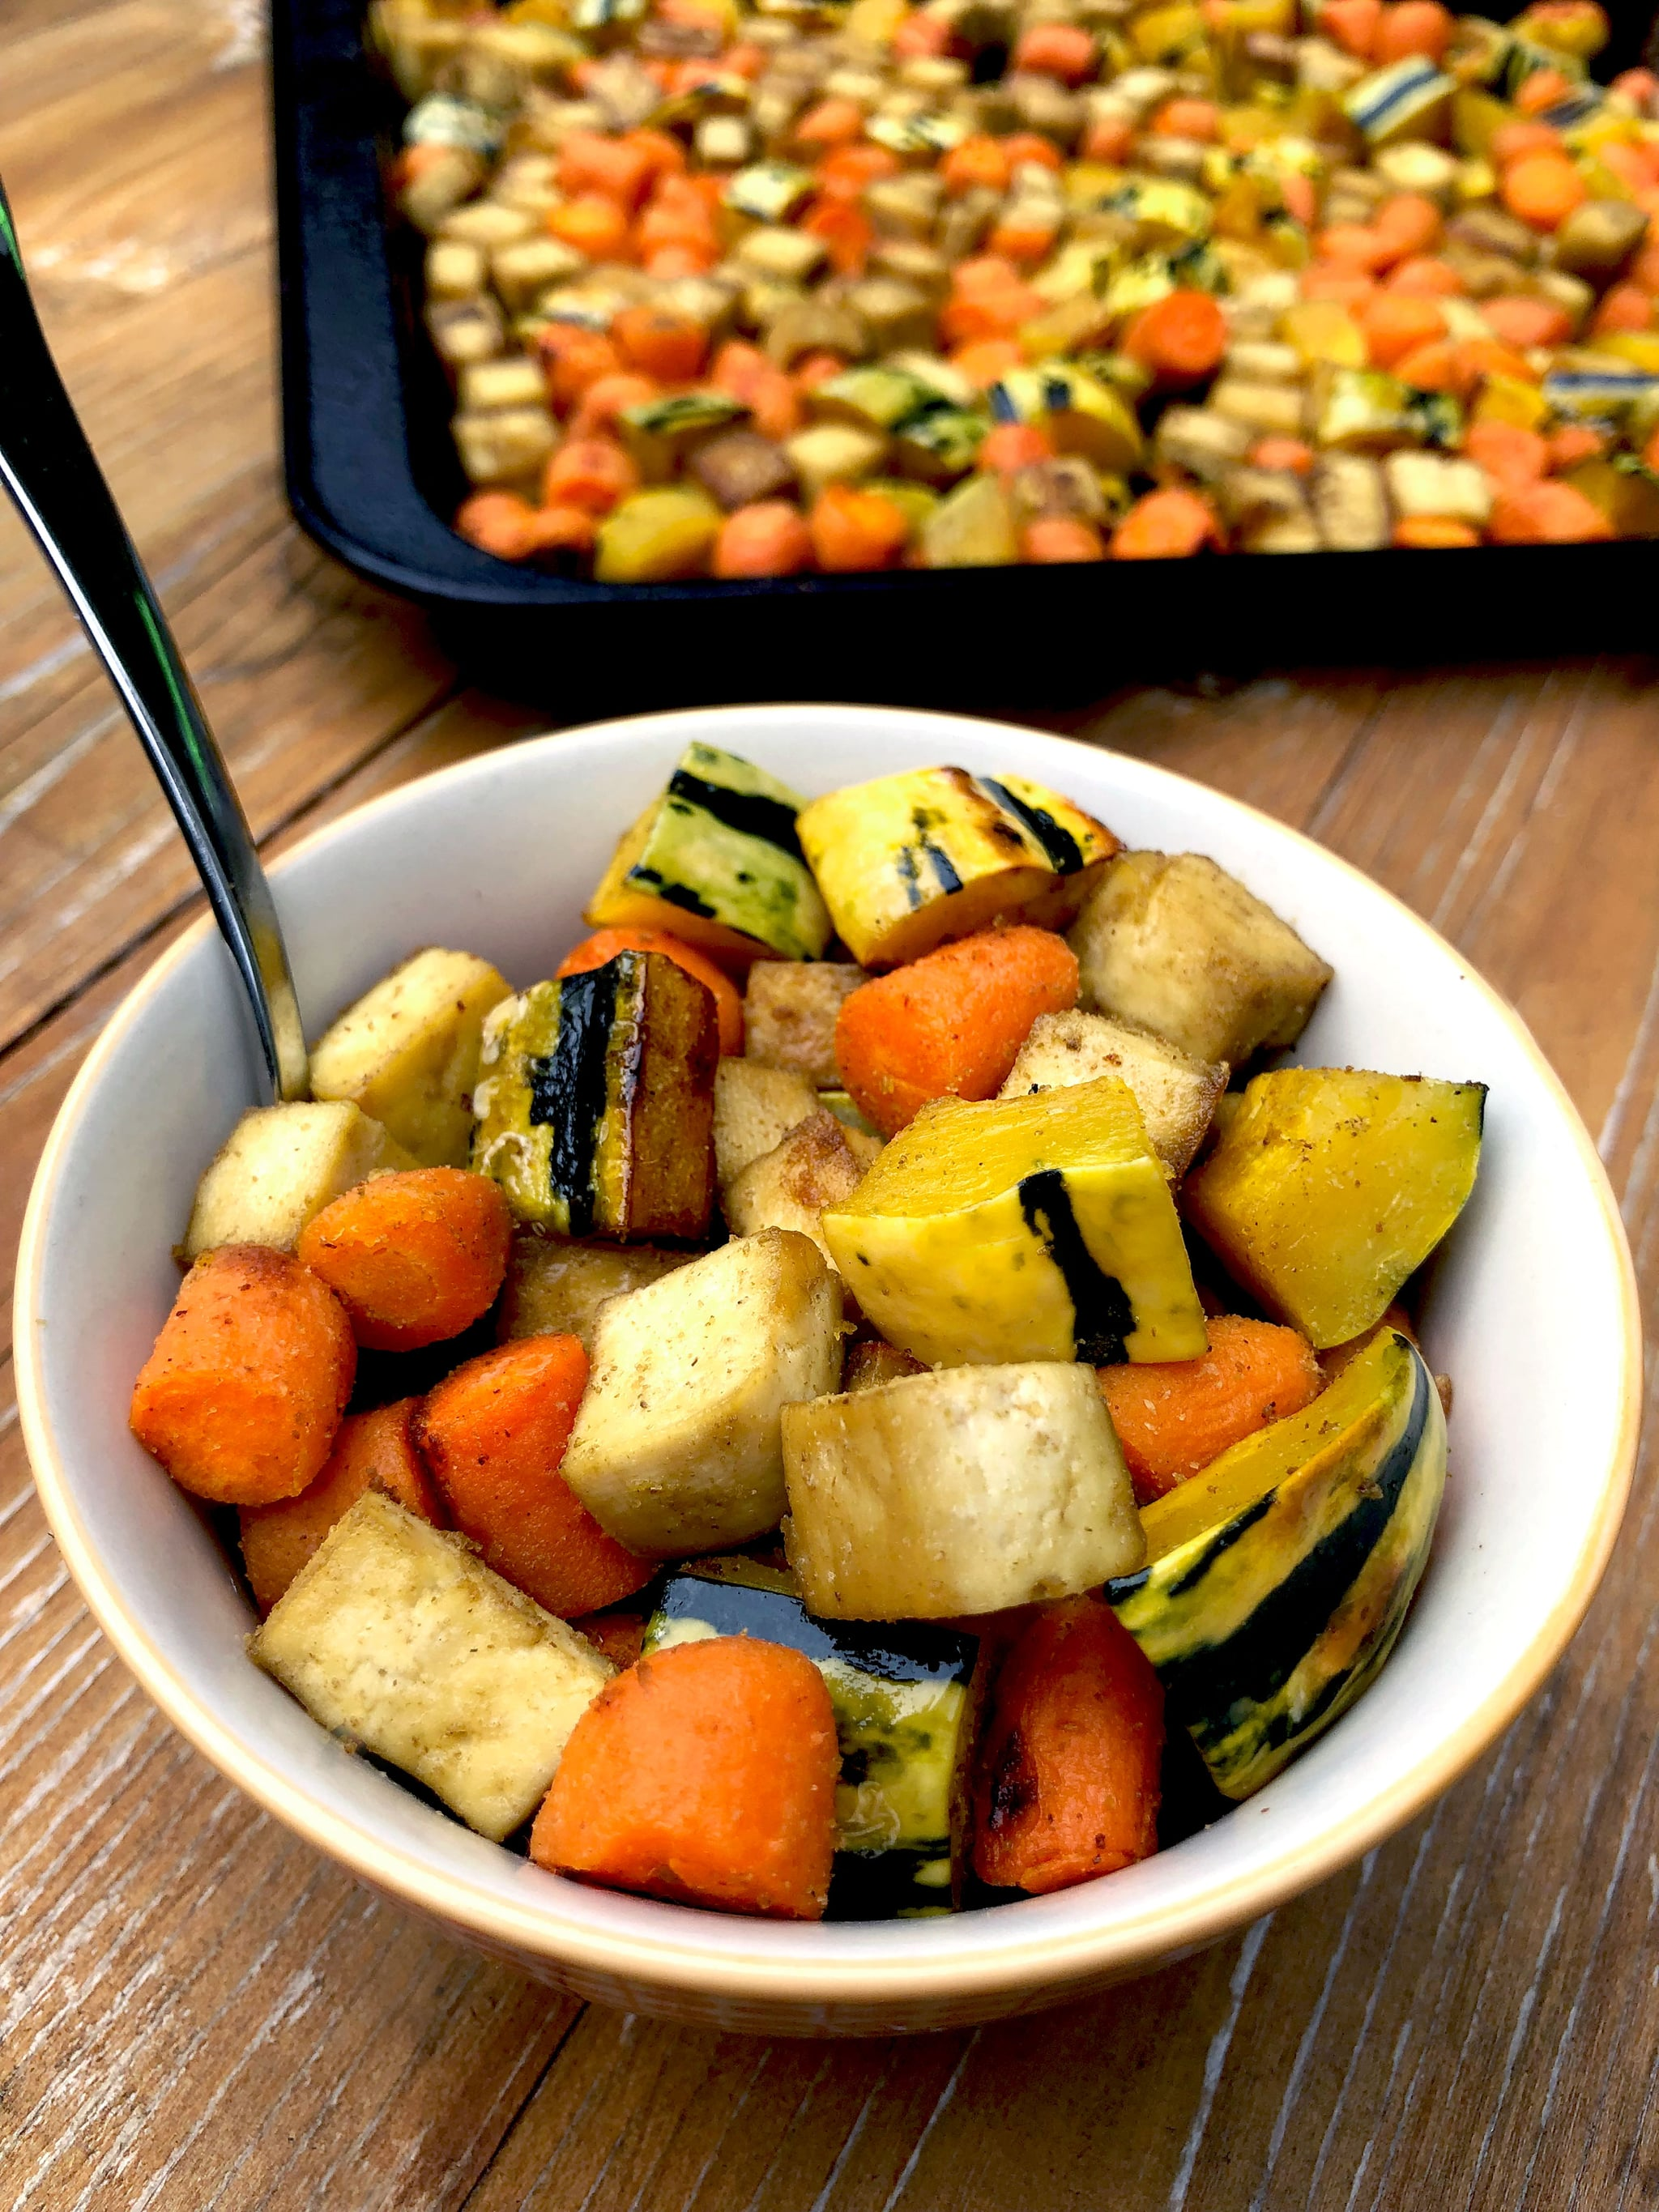 With Over 20 Grams of Protein, This Fall-Inspired Vegan 1-Pan Dinner Is Ready in 45 Minutes